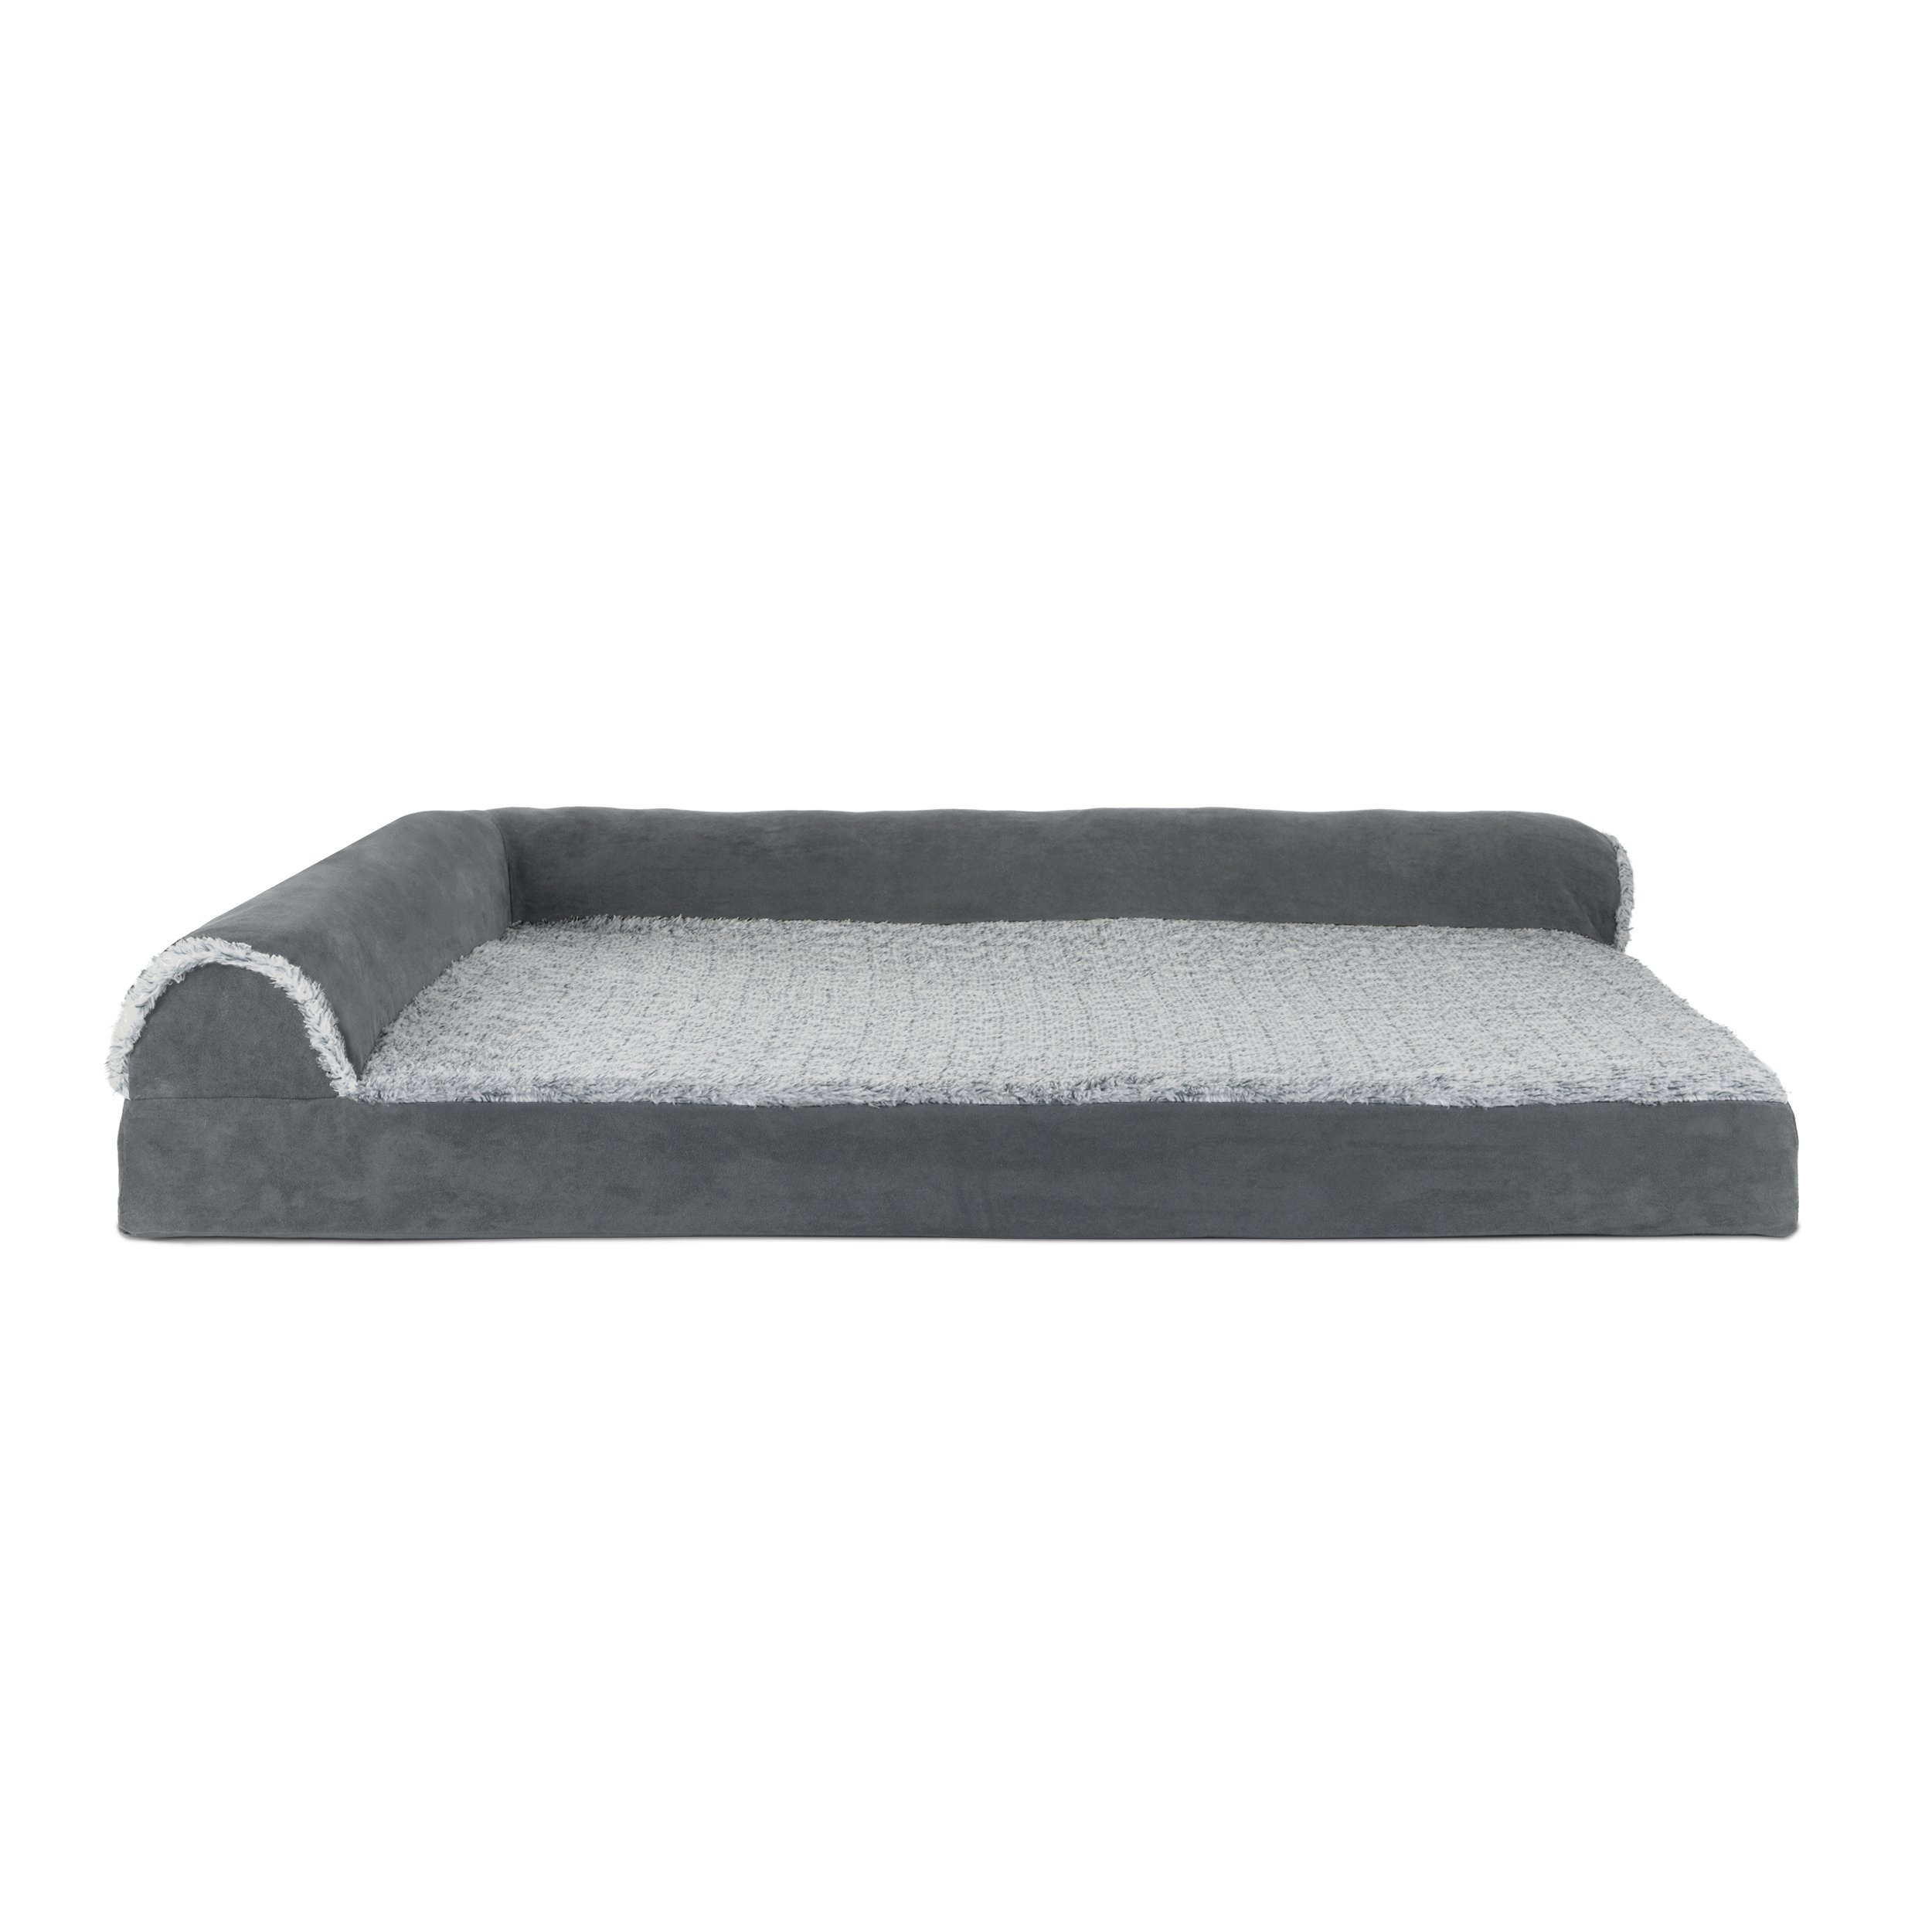 Furhaven Pet Dog Bed | Deluxe Cooling Gel Memory Foam Orthopedic Two-Tone Plush Faux Fur & Suede L Shaped Corner Chaise Lounge Sofa-Style Living Room Couch Pet Bed for Dogs & Cats, Stone Gray, Jumbo